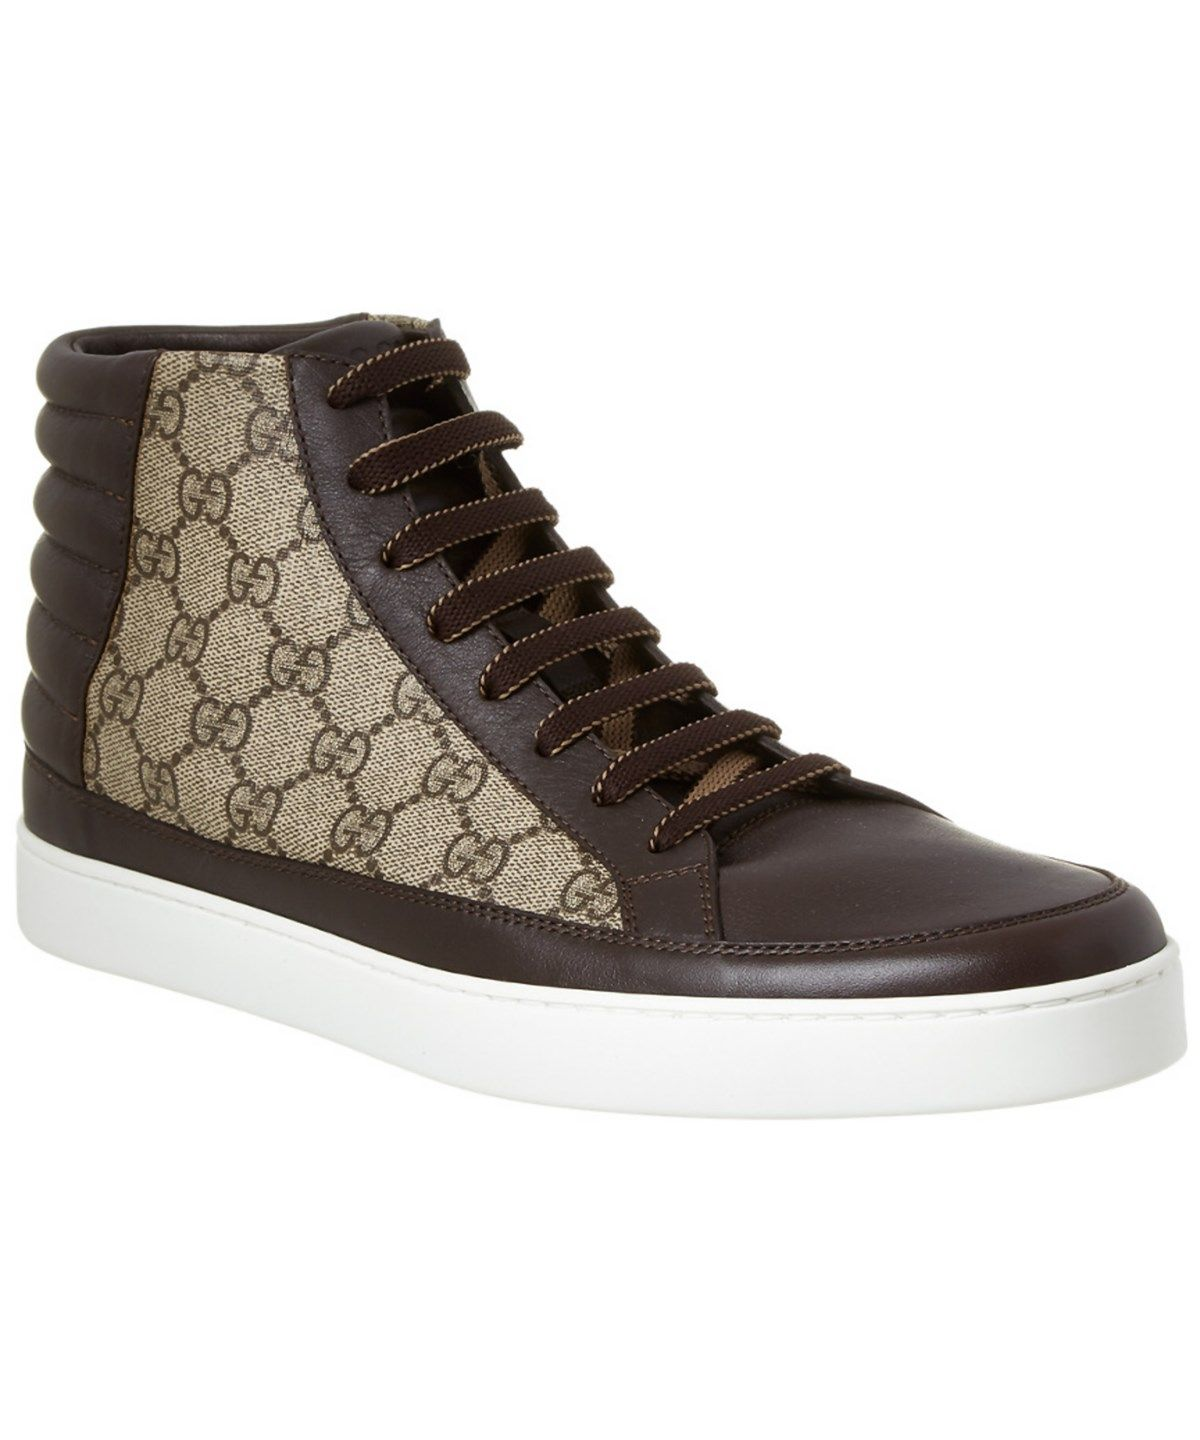 40c85f45 GUCCI Gucci Gg Supreme High Top Sneaker'. #gucci #shoes #shoes ...